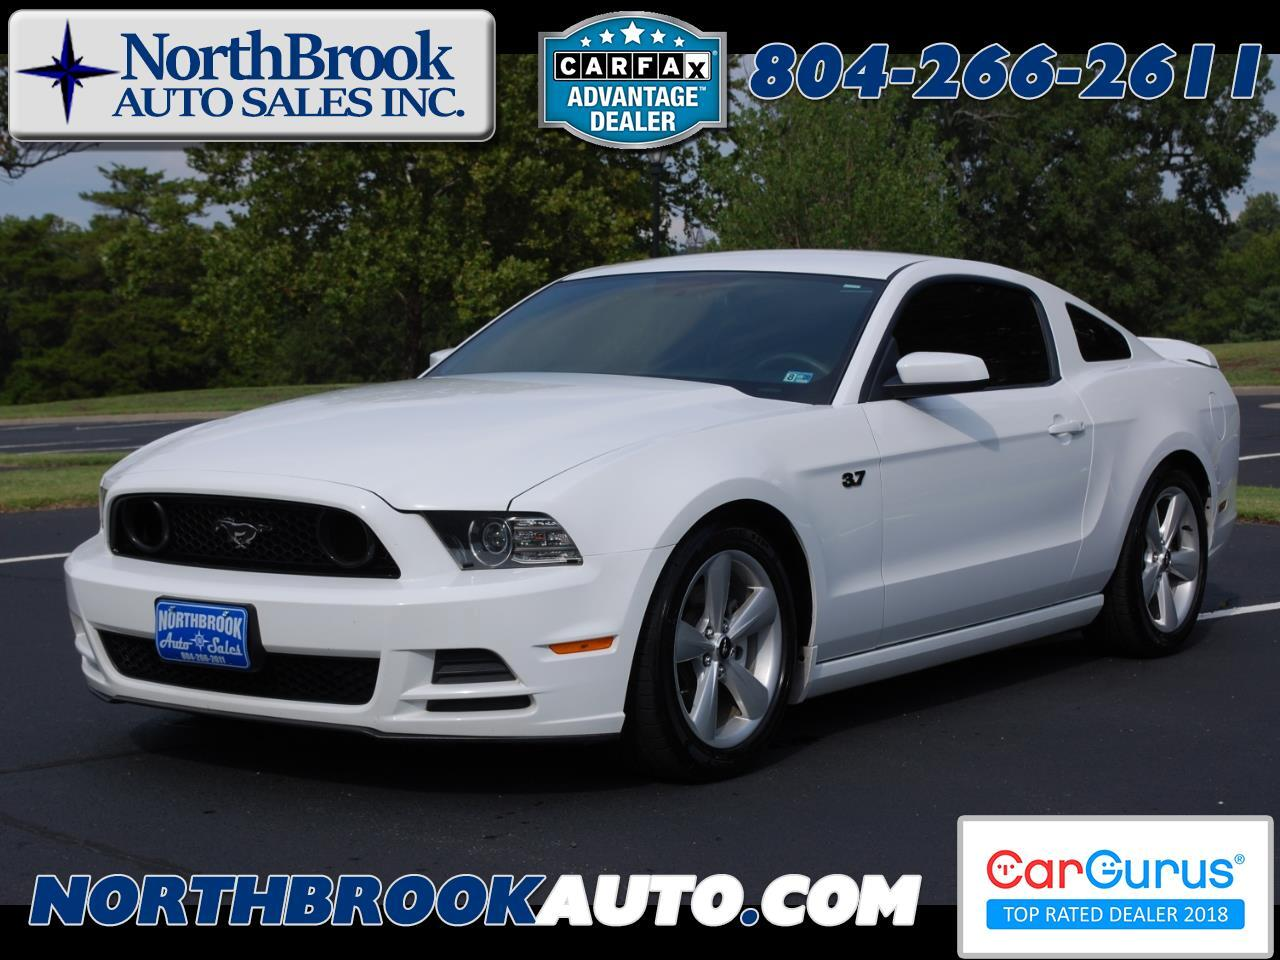 Used 2014 Ford Mustang for Sale in Glen Allen, VA 23060 NorthBrook